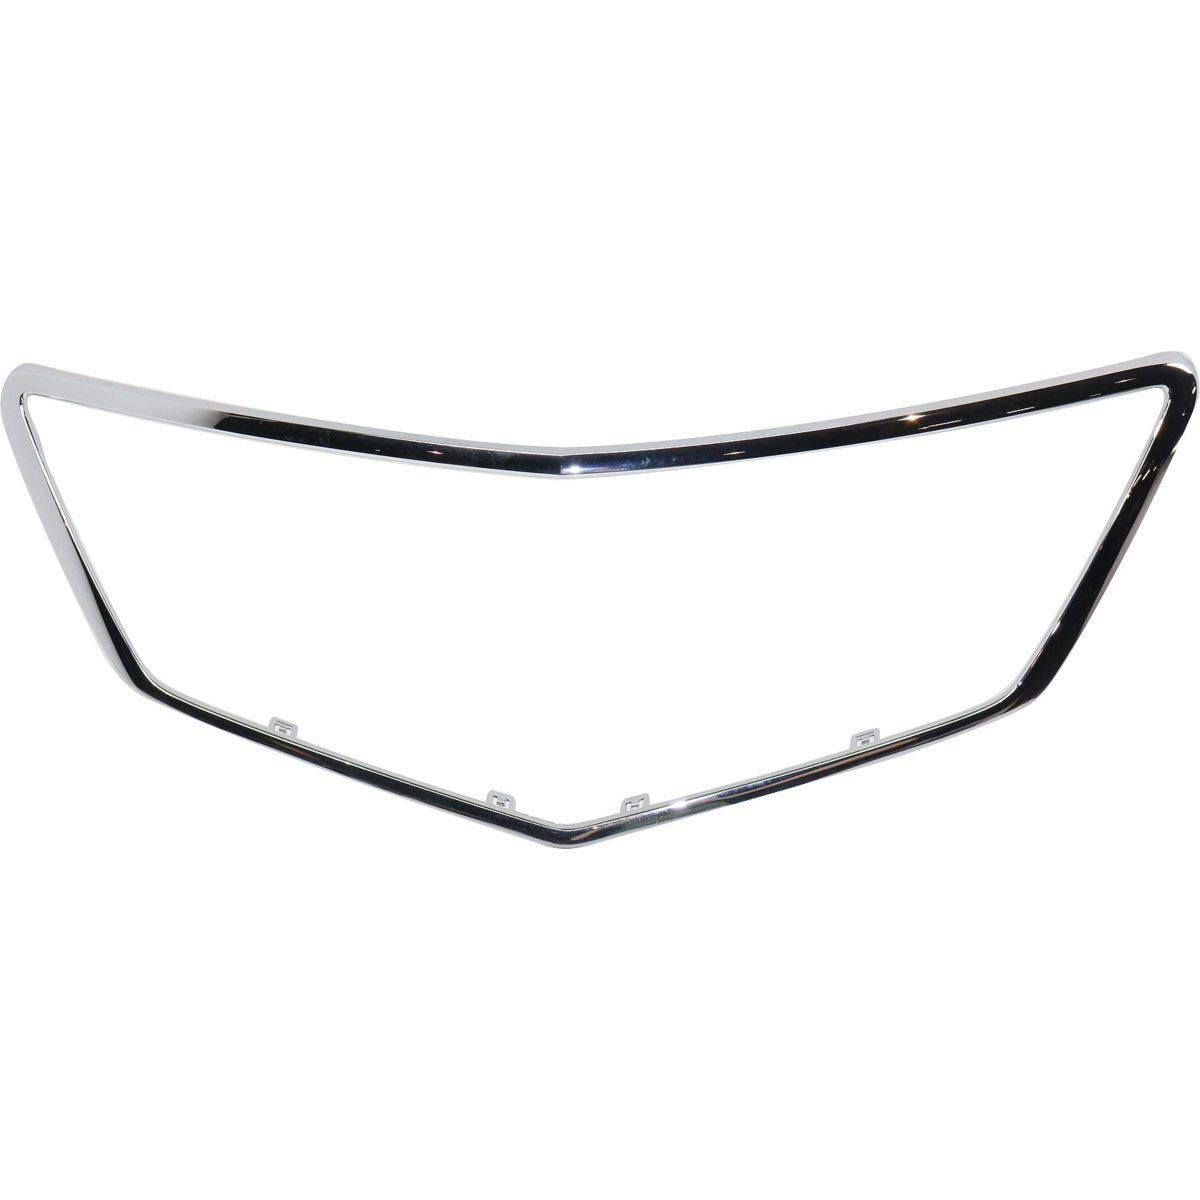 For Toyota Tacoma 2005-2011 Front Driver Left Mud Guard Genuine 76622 04094